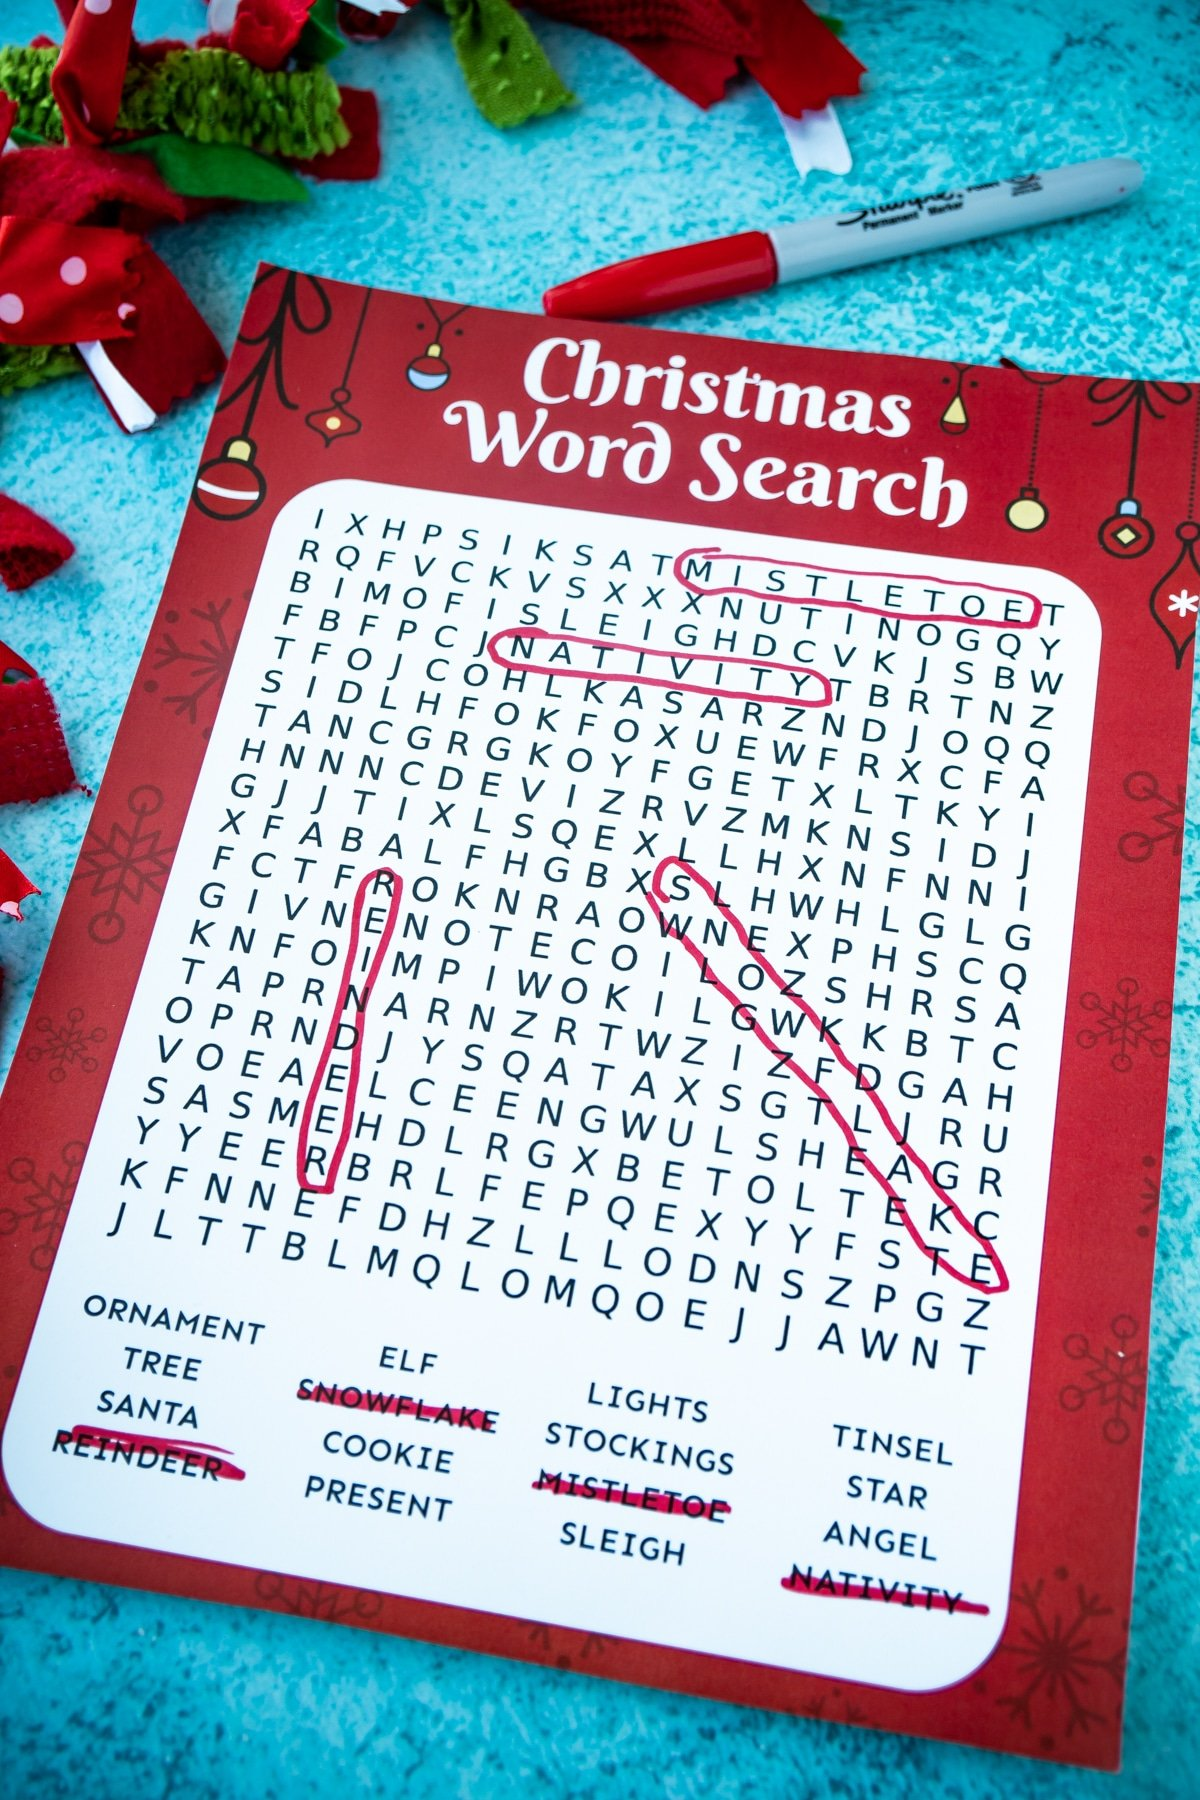 Christmas word search on a blue background